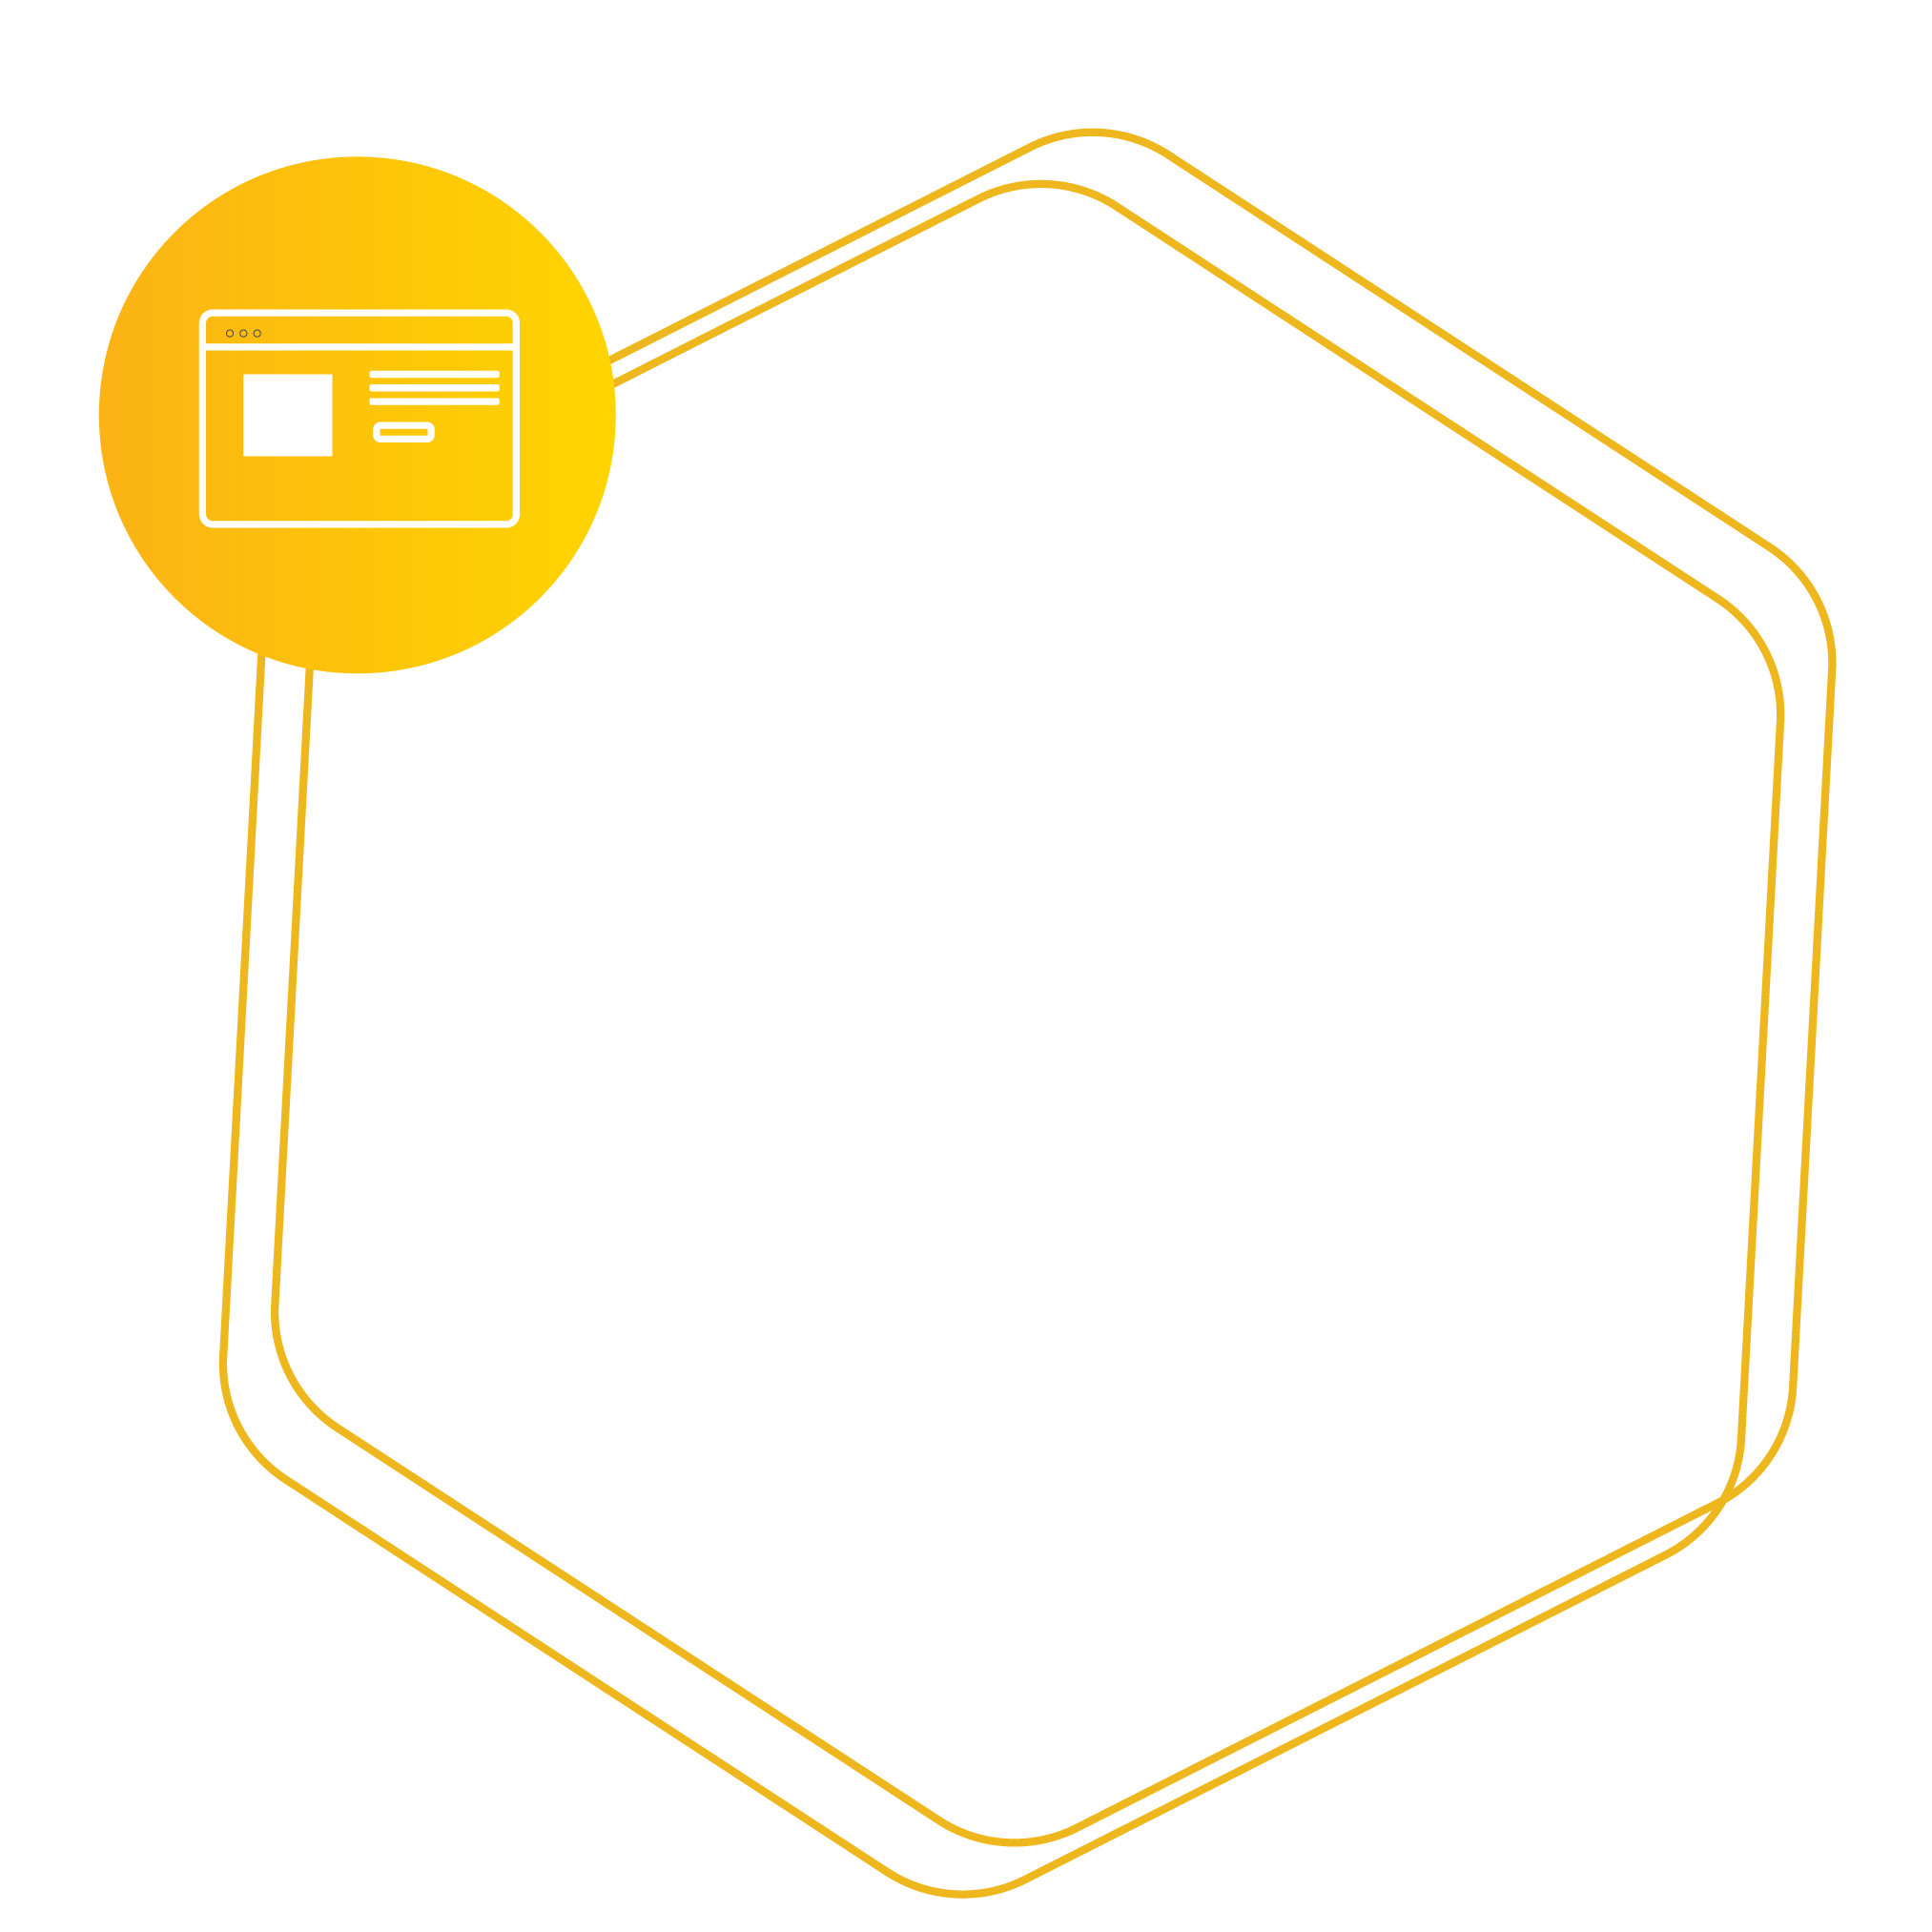 Hexagon placeholder for Web Design Development Services